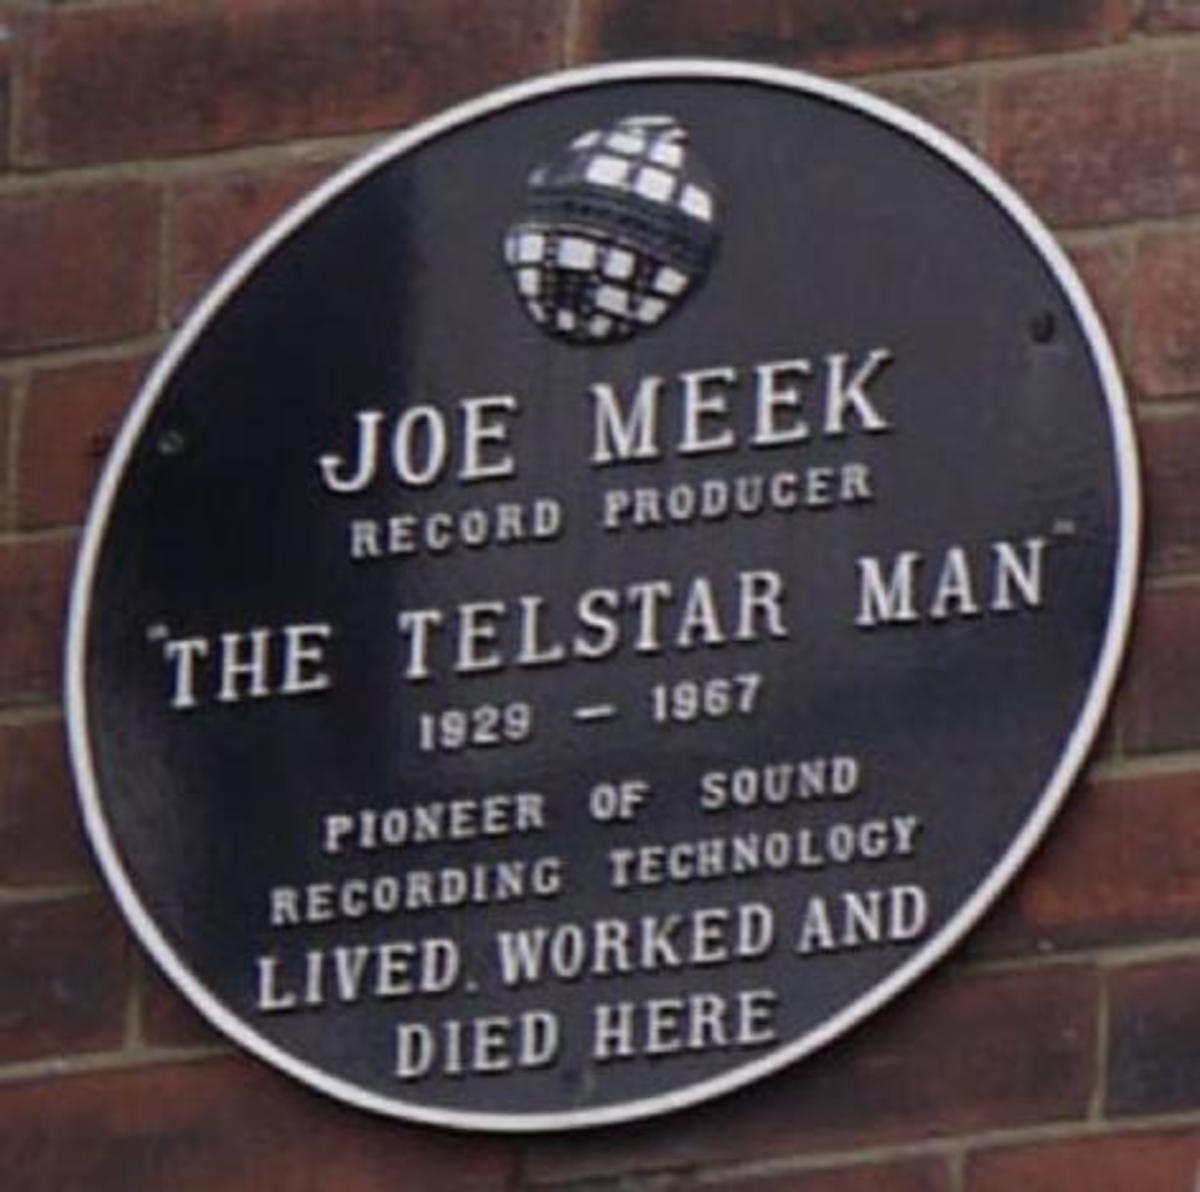 A plaque on the wall of the building where Joe Meek lived, worked and died.